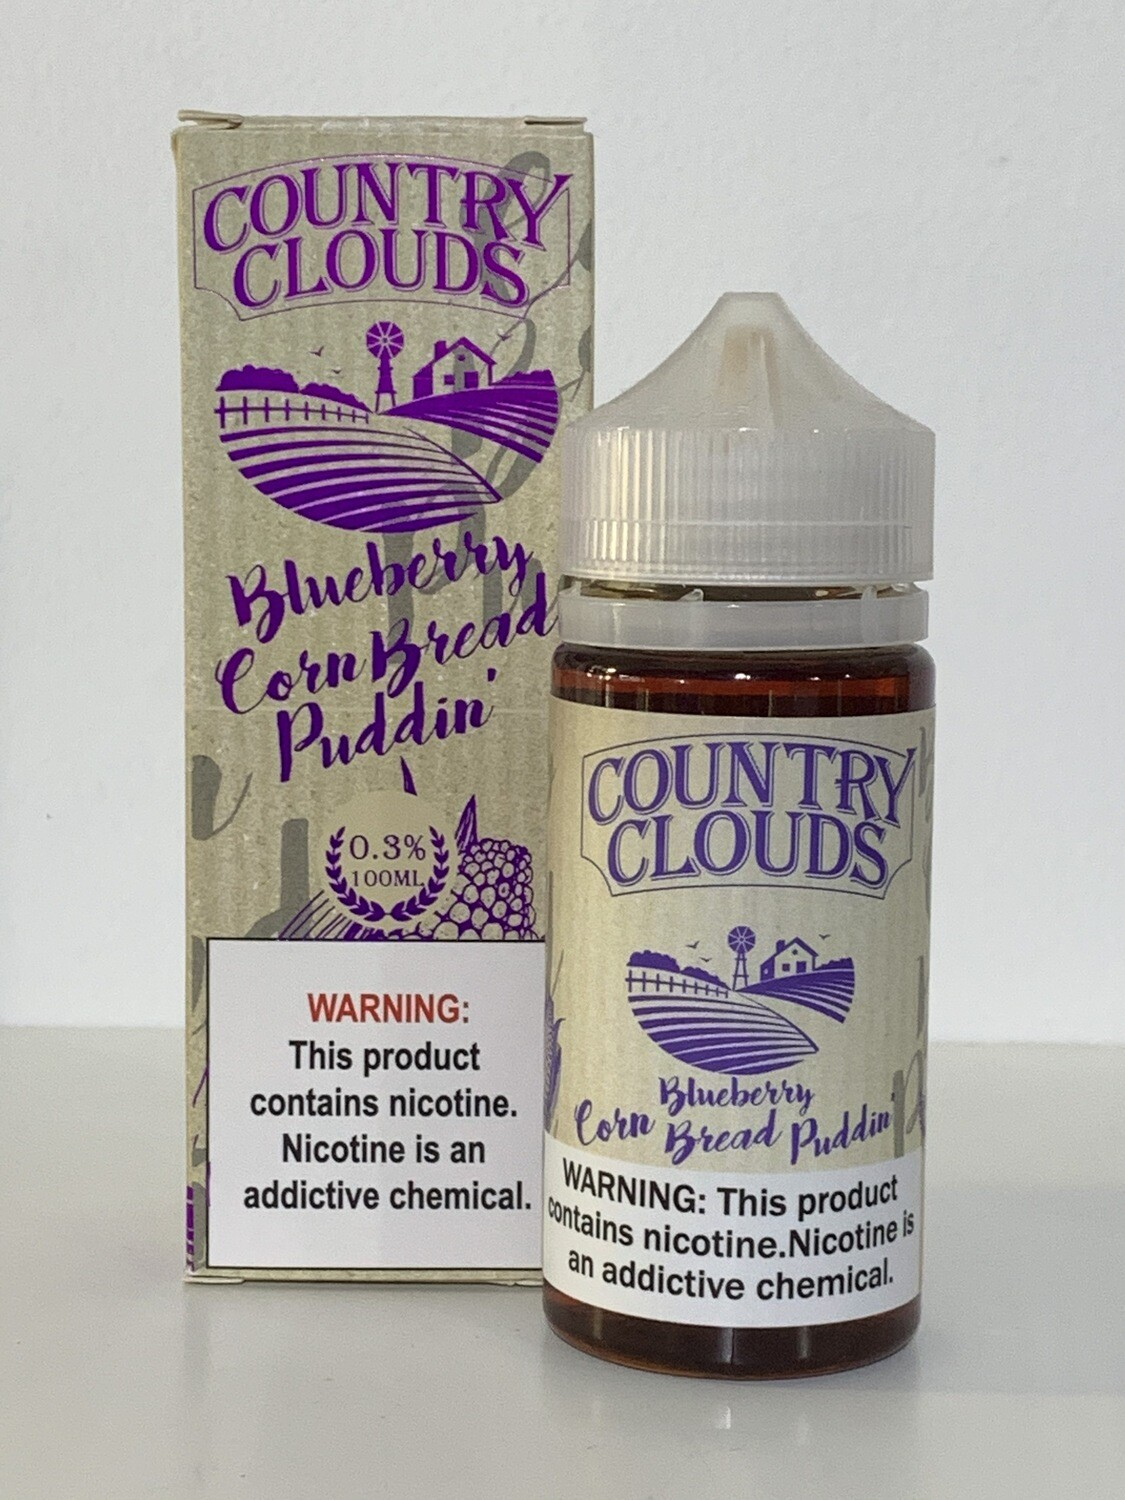 Country Clouds Blueberry CornBread 100ml